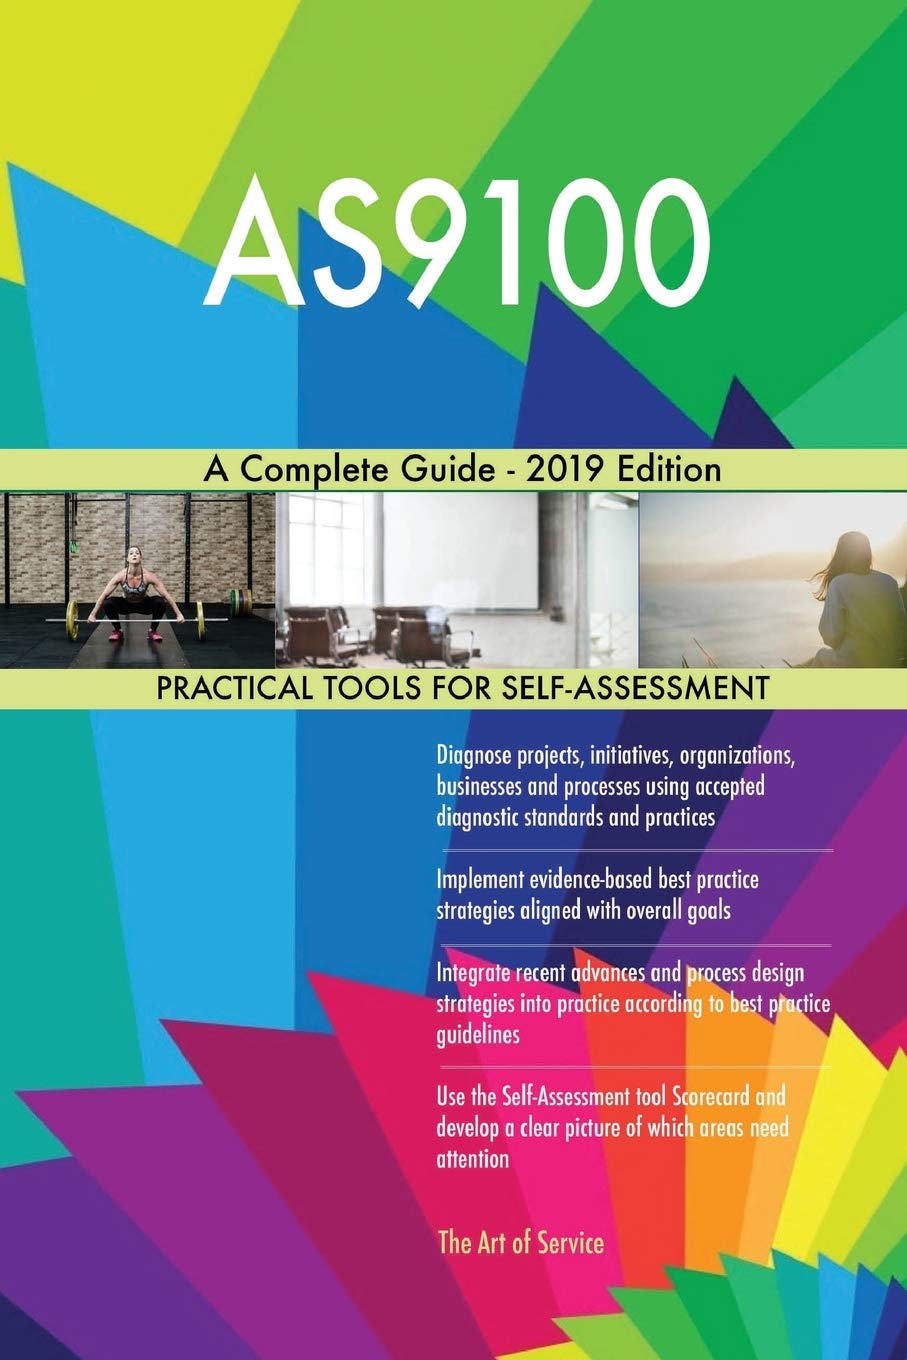 As9100 a Complete Guide - 2019 Edition: Gerardus Blokdyk